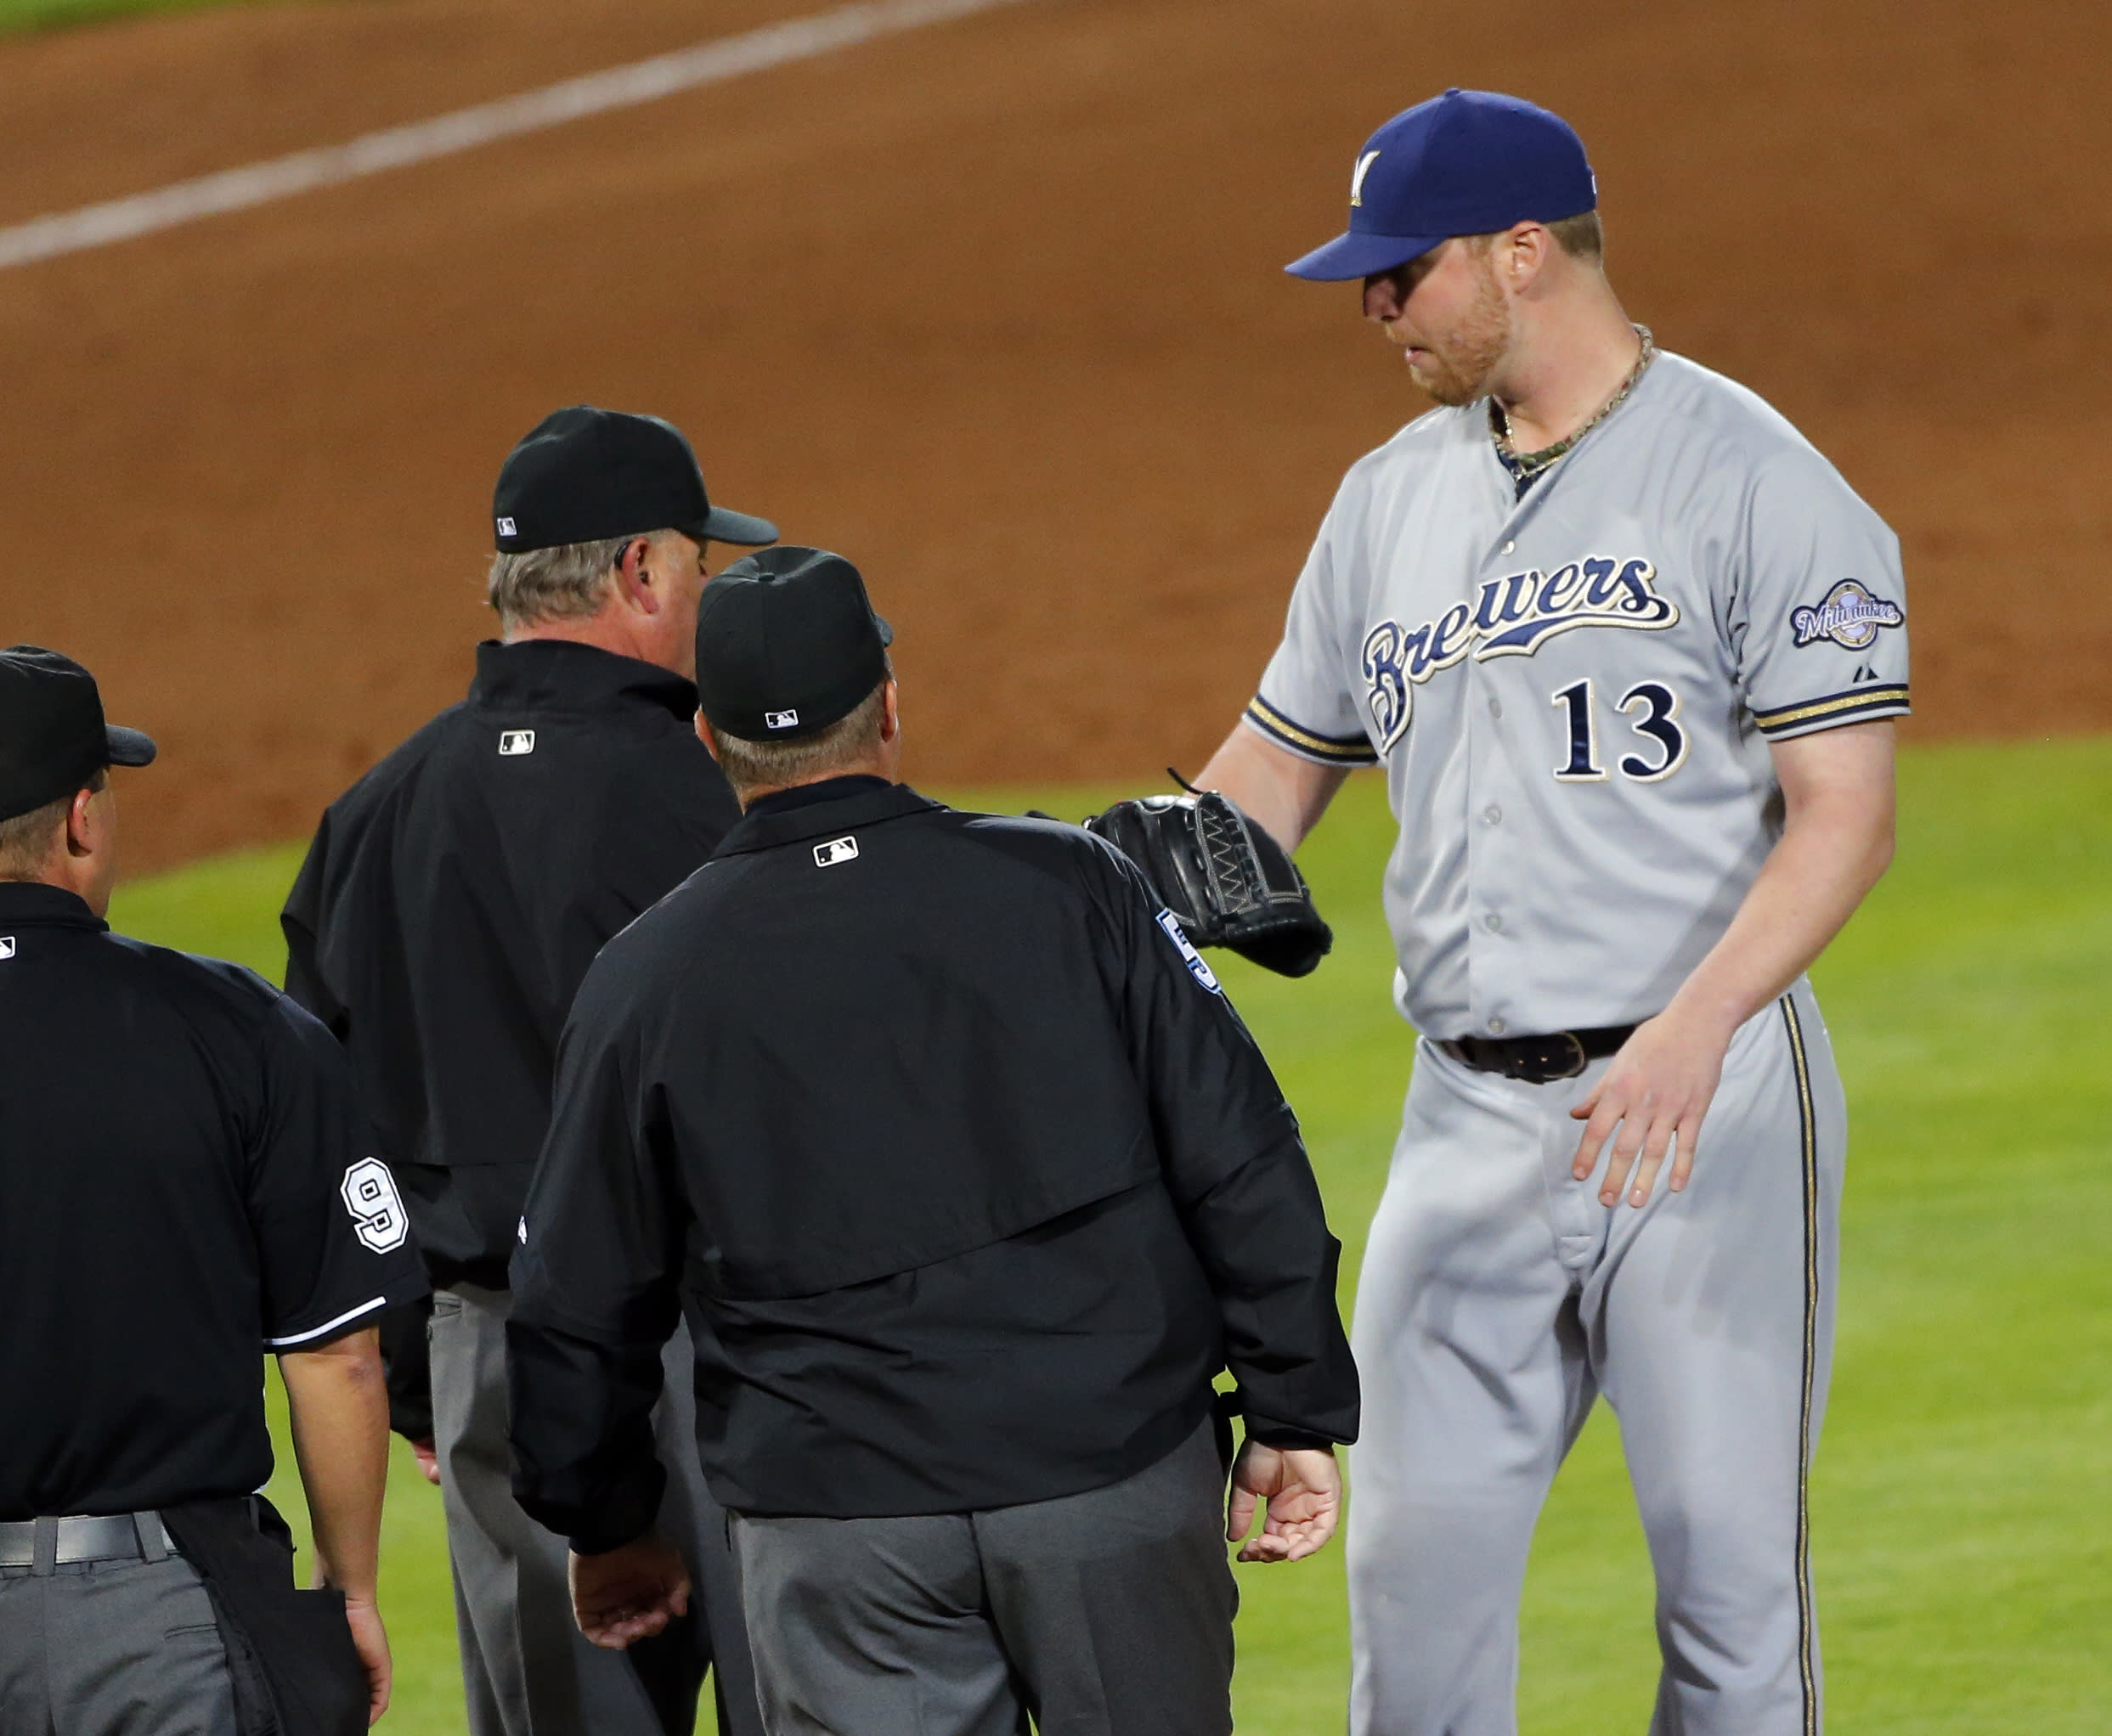 Brewers' Smith ejected for having rosin, sunscreen on arm